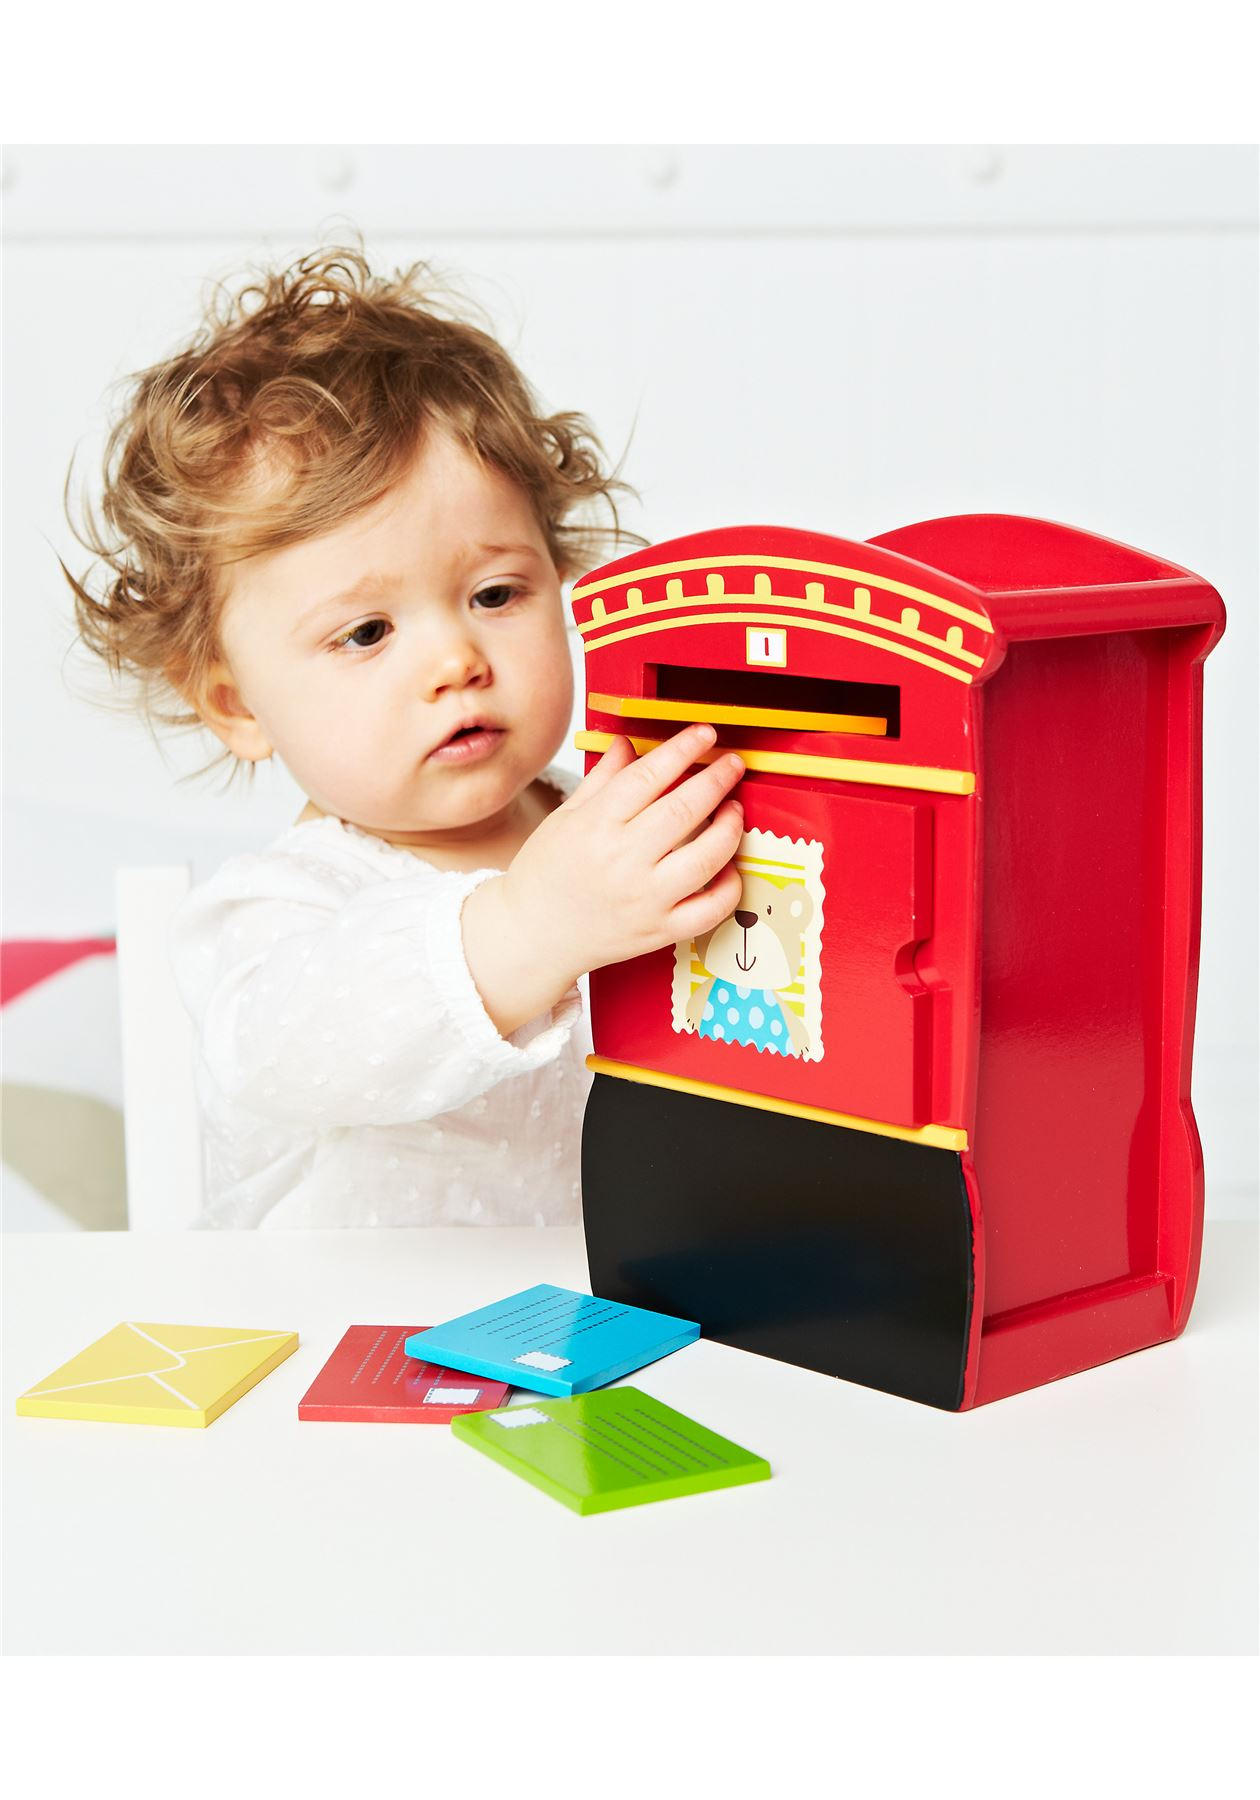 ELC Children Kids Creative Education Learning Wood Wooden Post Box